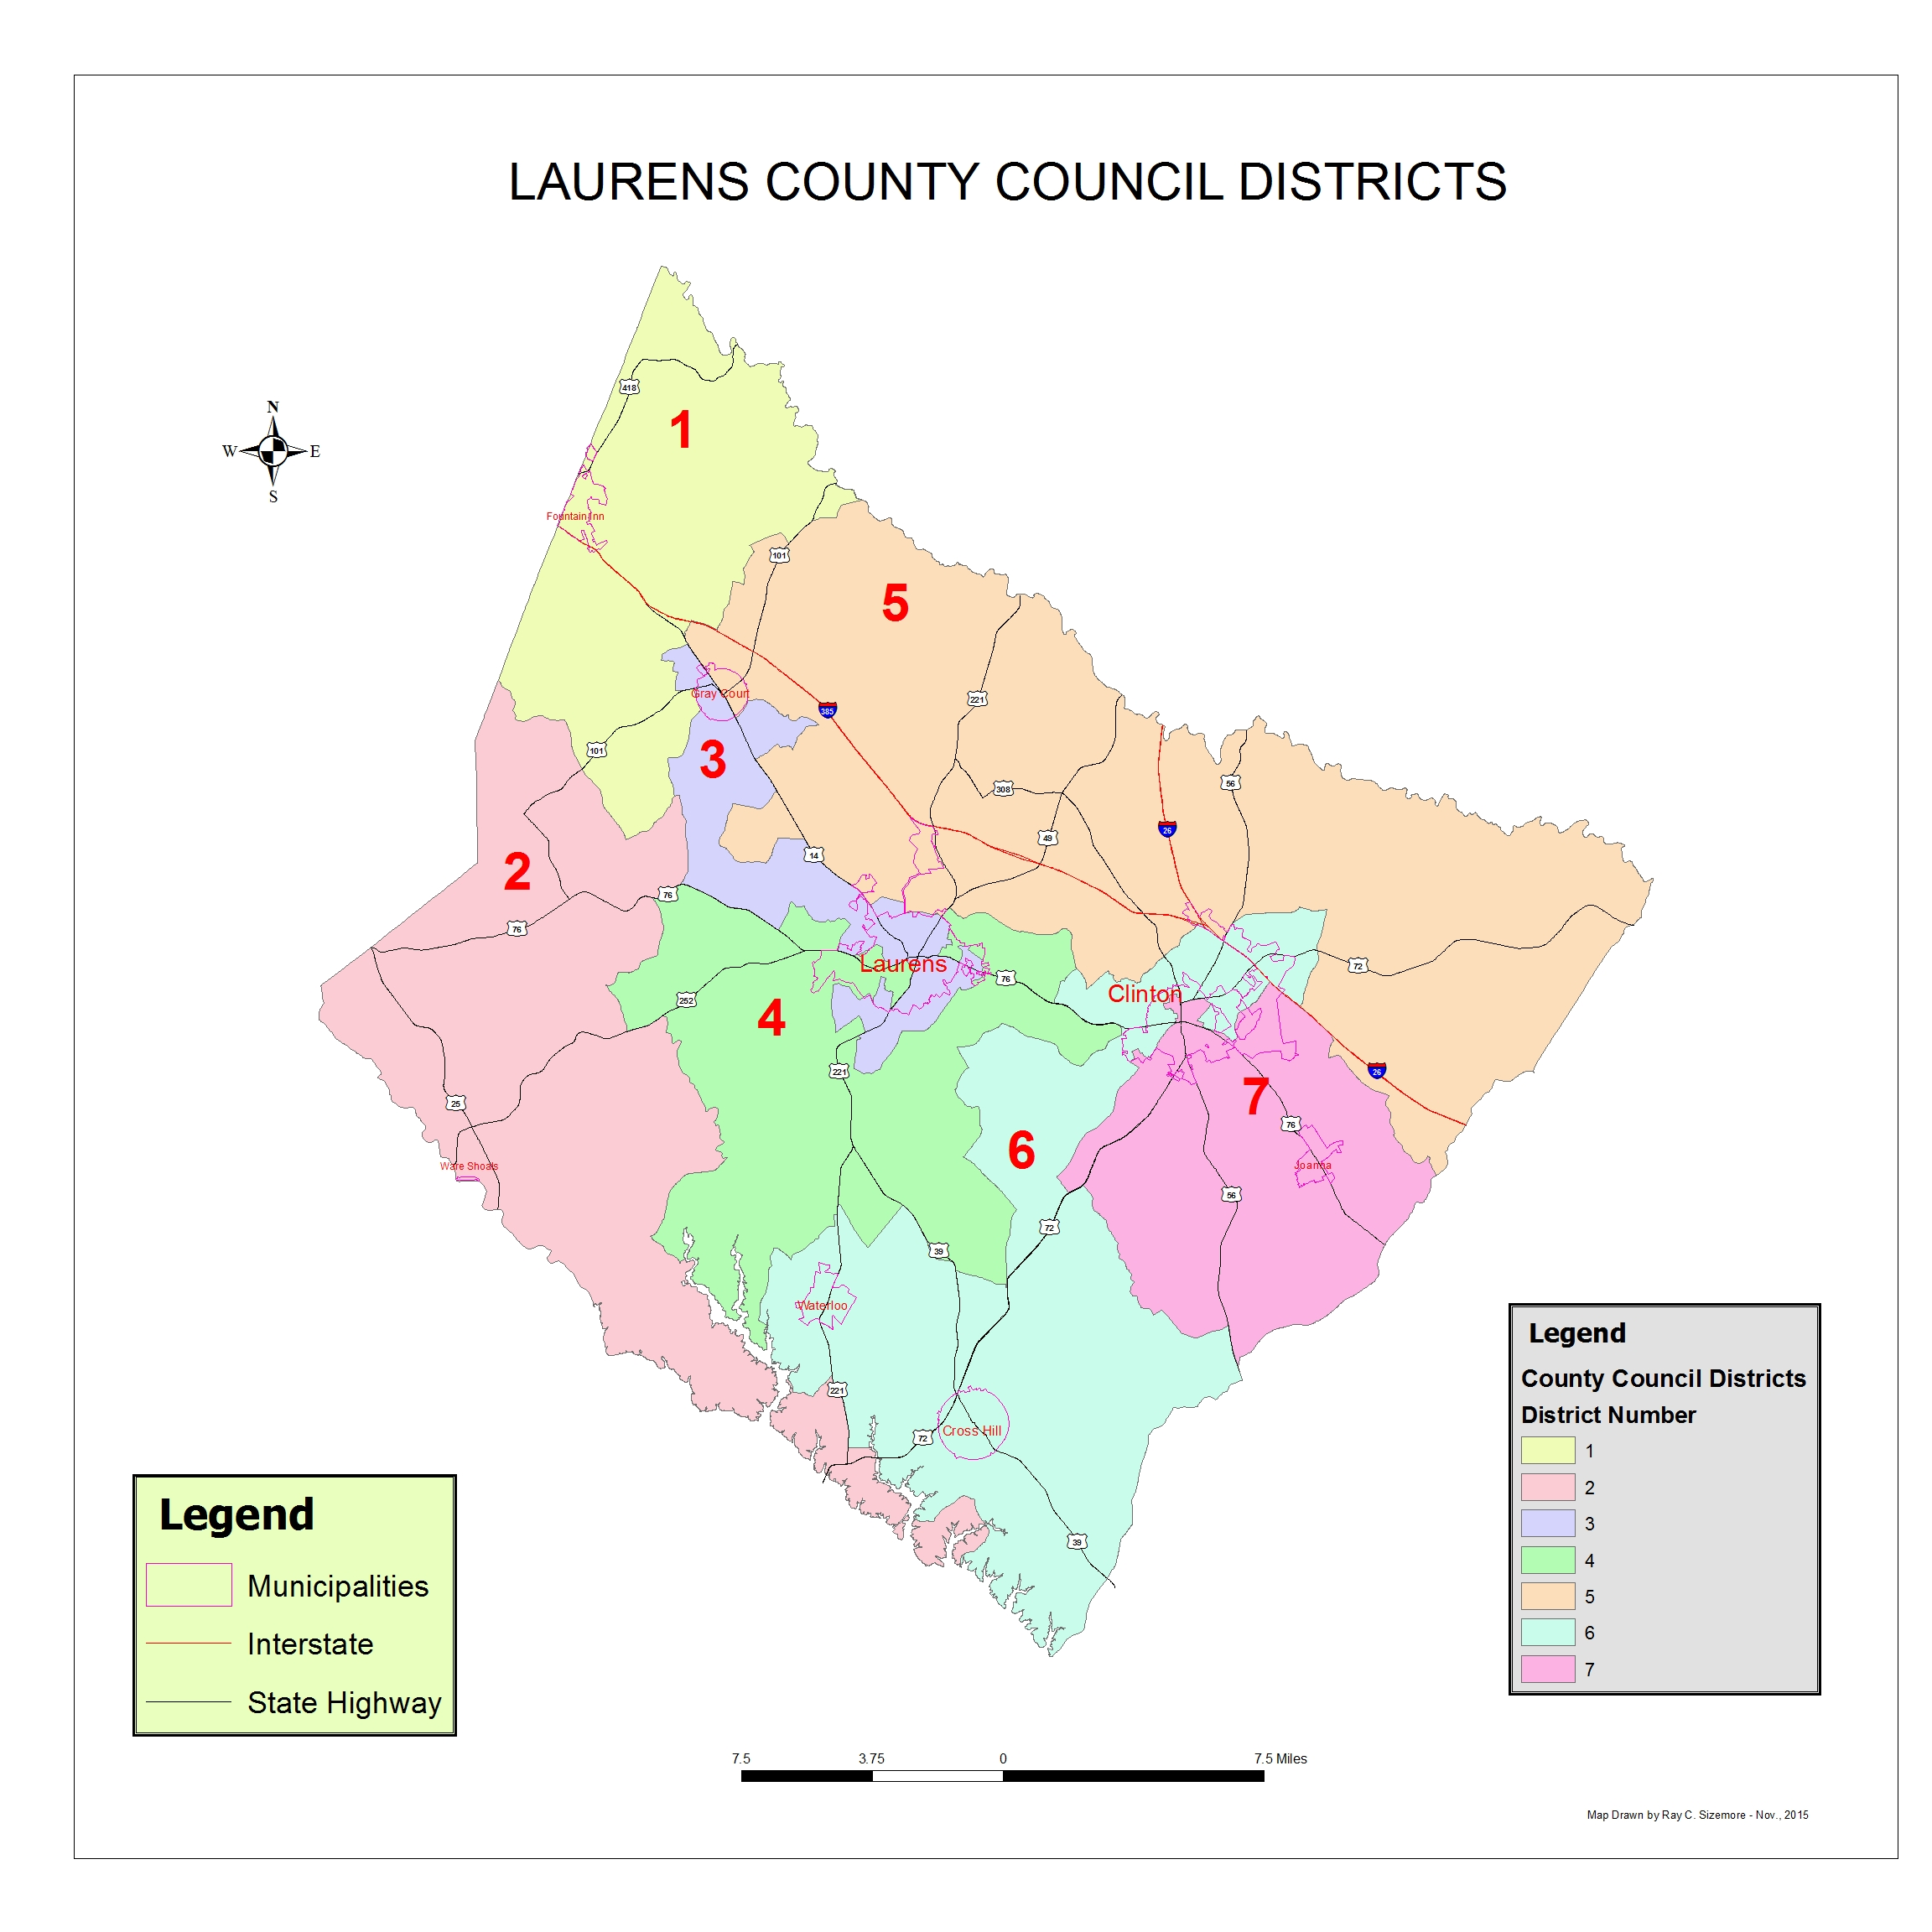 County Council Distrists